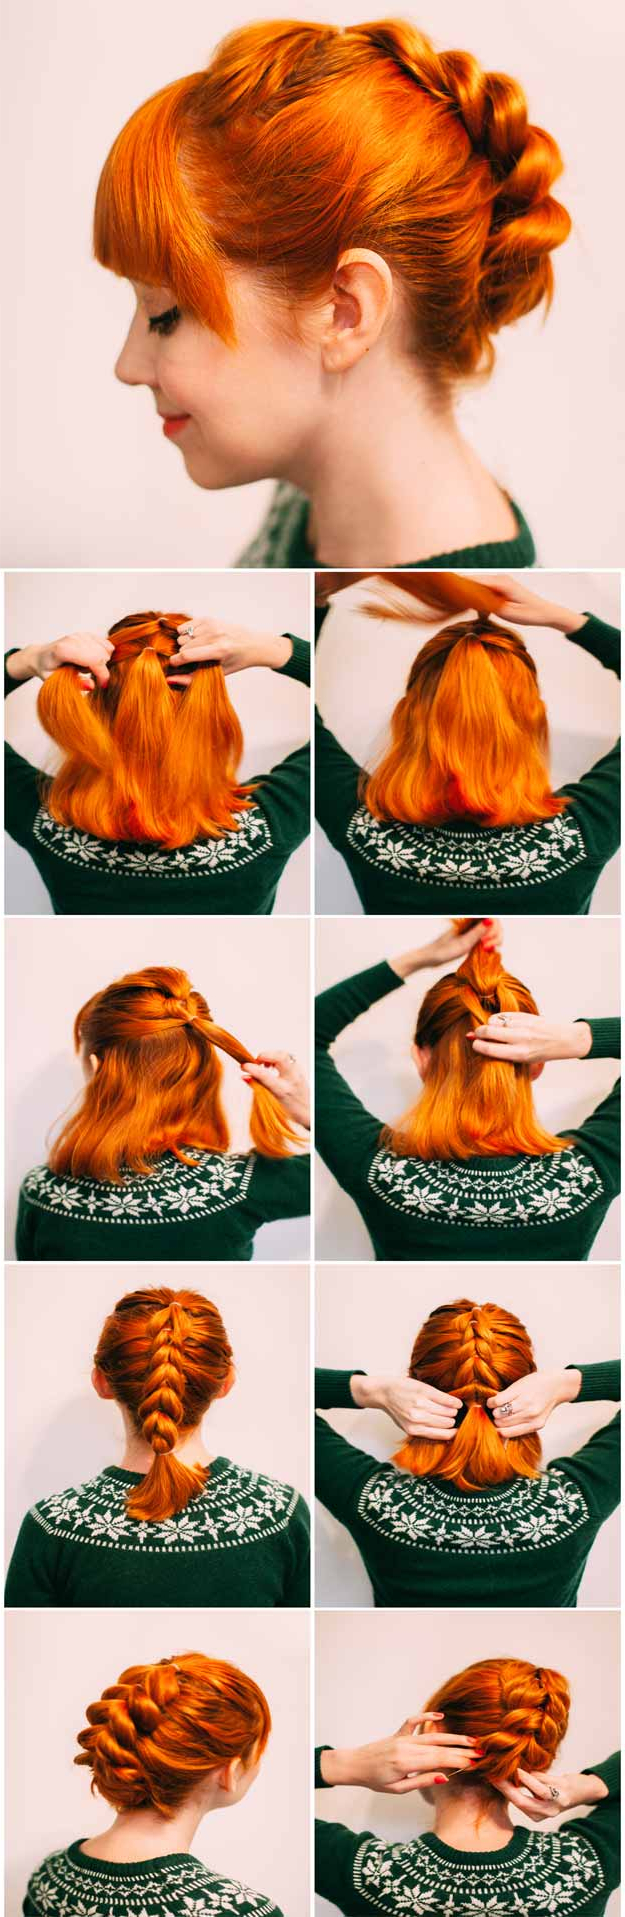 31 Wedding Hairstyles For Long Hair – The Goddess Within Most Recently Released Red, Orange And Yellow Half Updo Hairstyles (View 17 of 20)